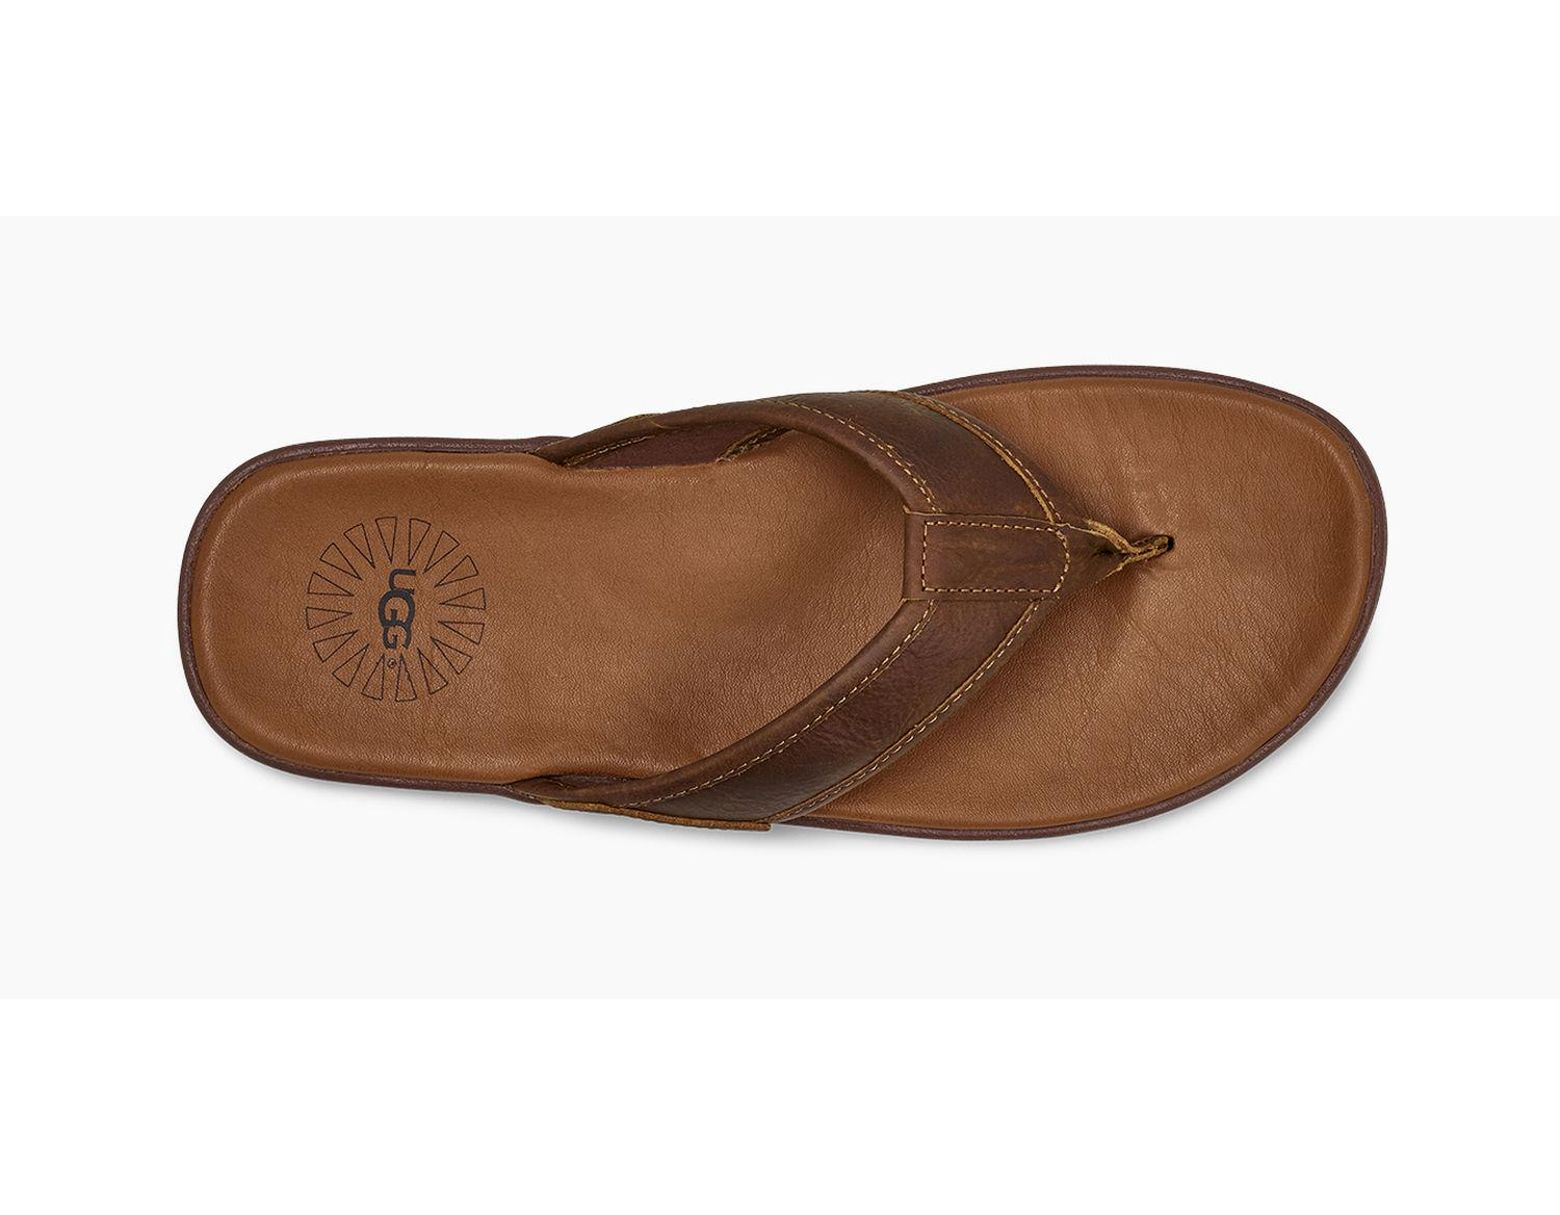 e3aeaf6784b1ba UGG Men's Seaside Leather Flip Flop in Brown for Men - Lyst